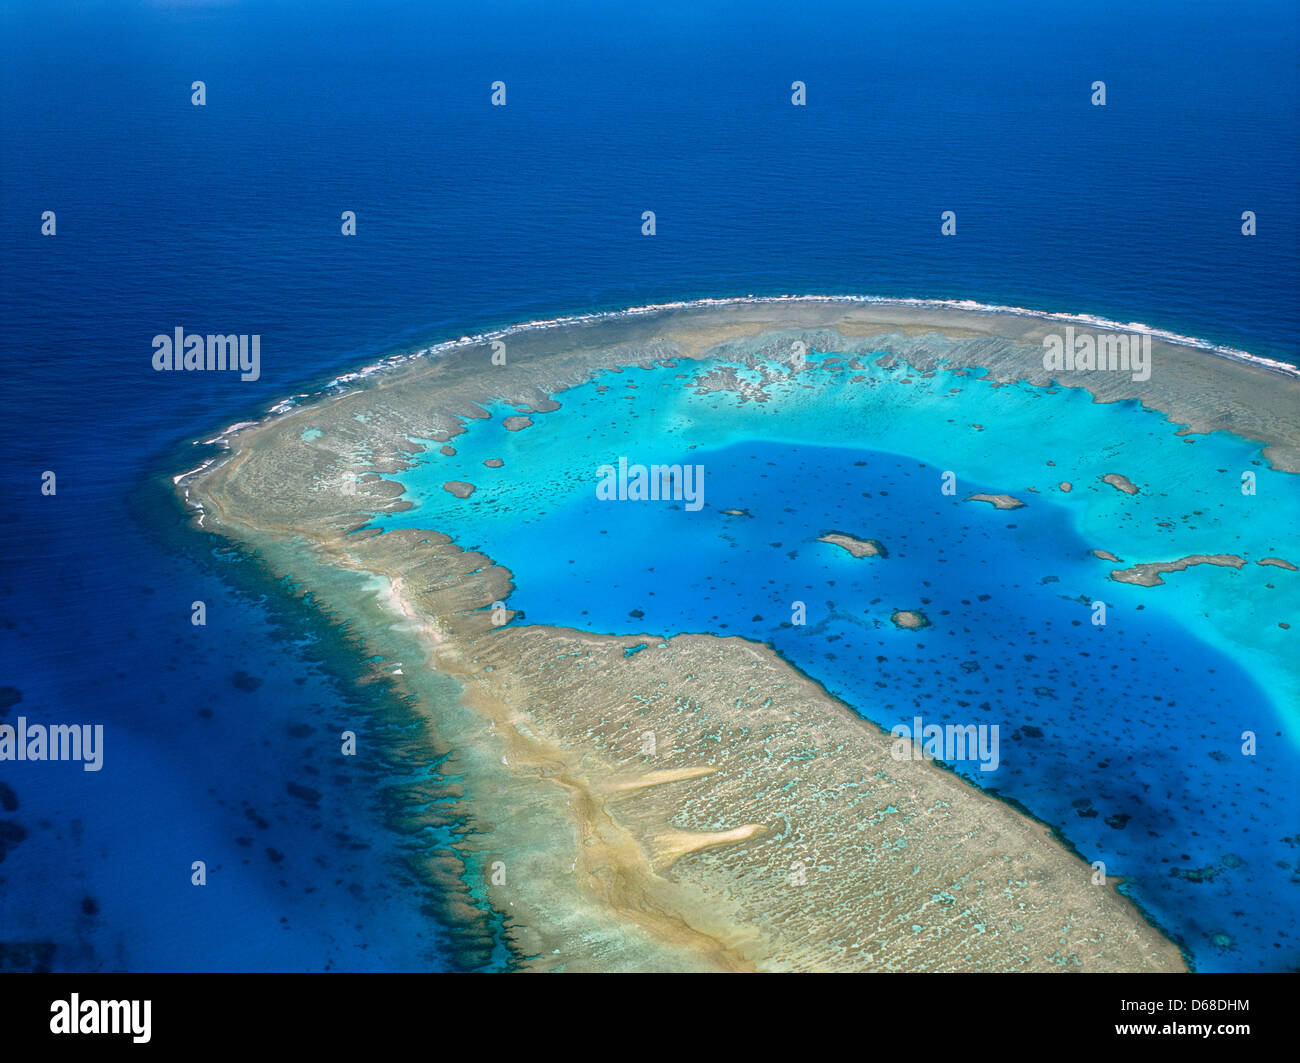 Australia, Queensland, Great Barrier Reef, aerial view of Boult Reef, a coral cay of the Bunker Group - Stock Image